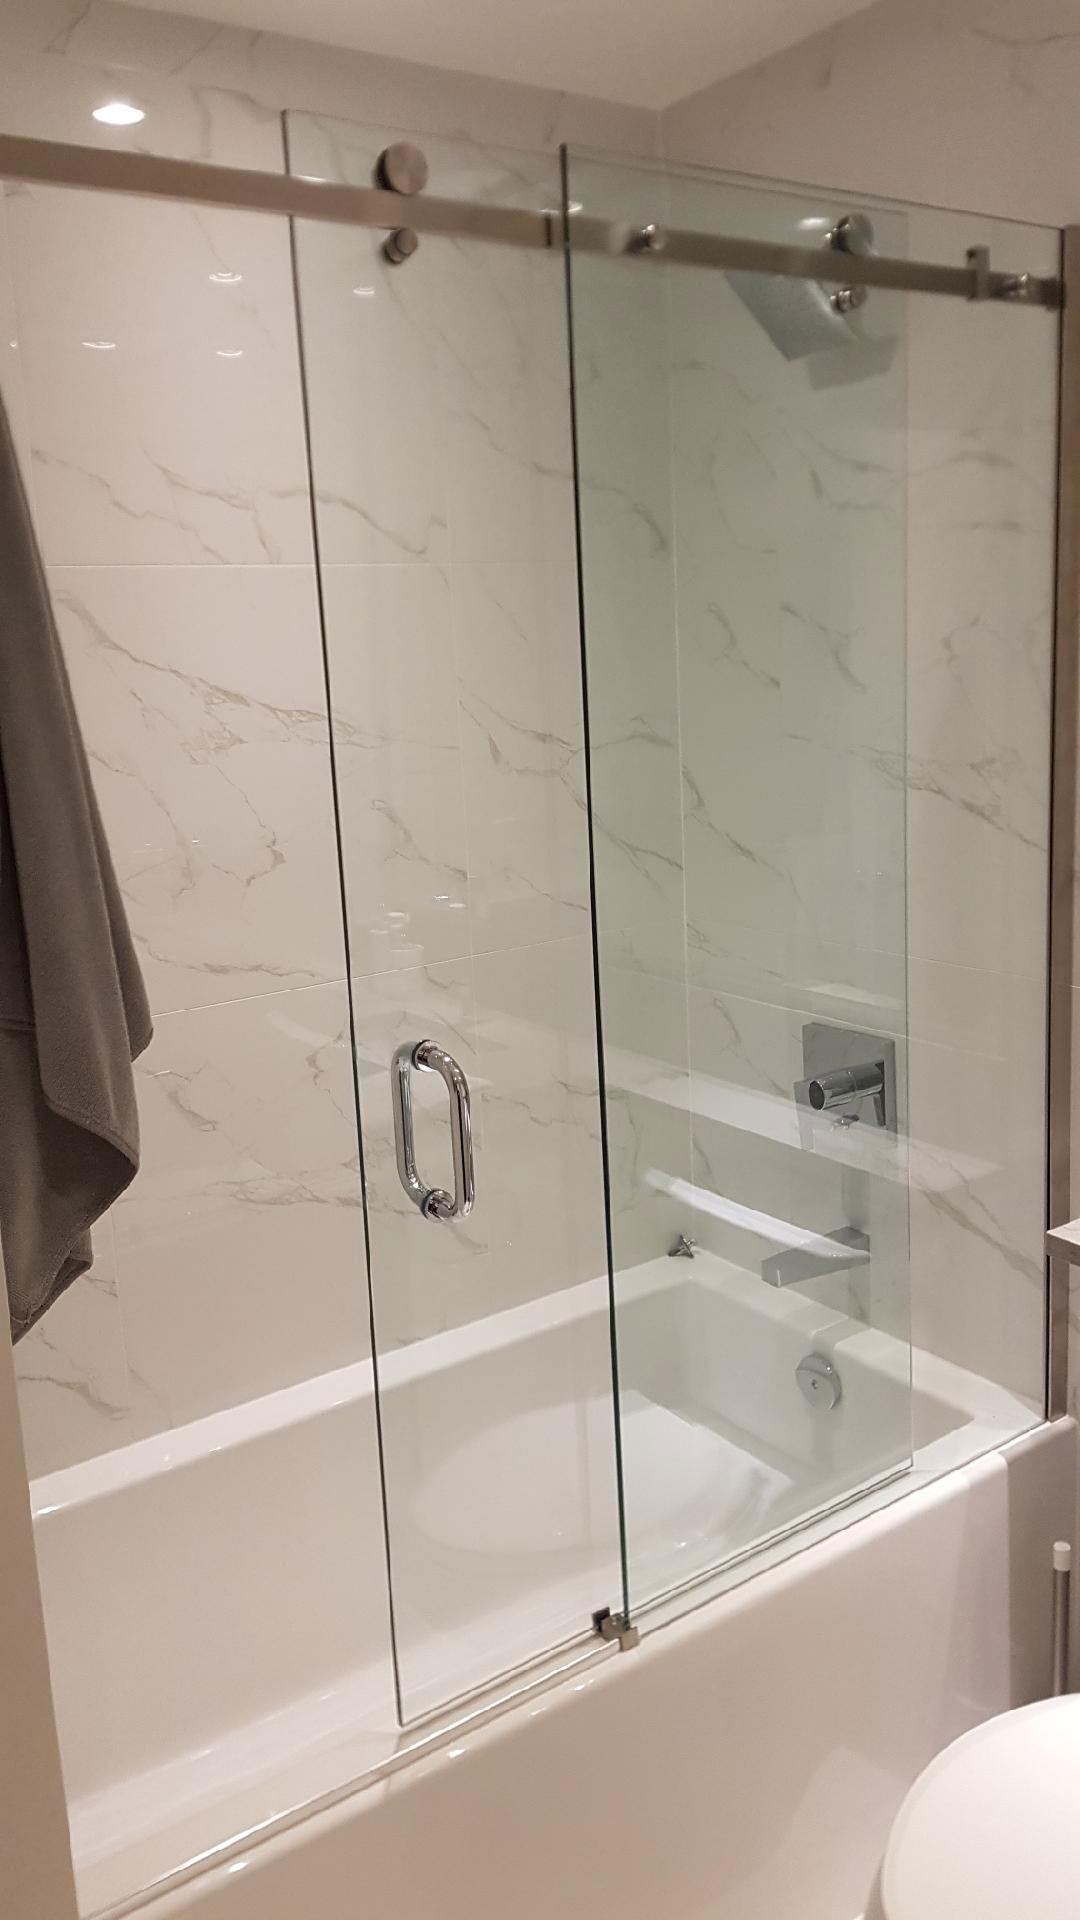 Sliding glass shower/tub doors, 10m tempered glass